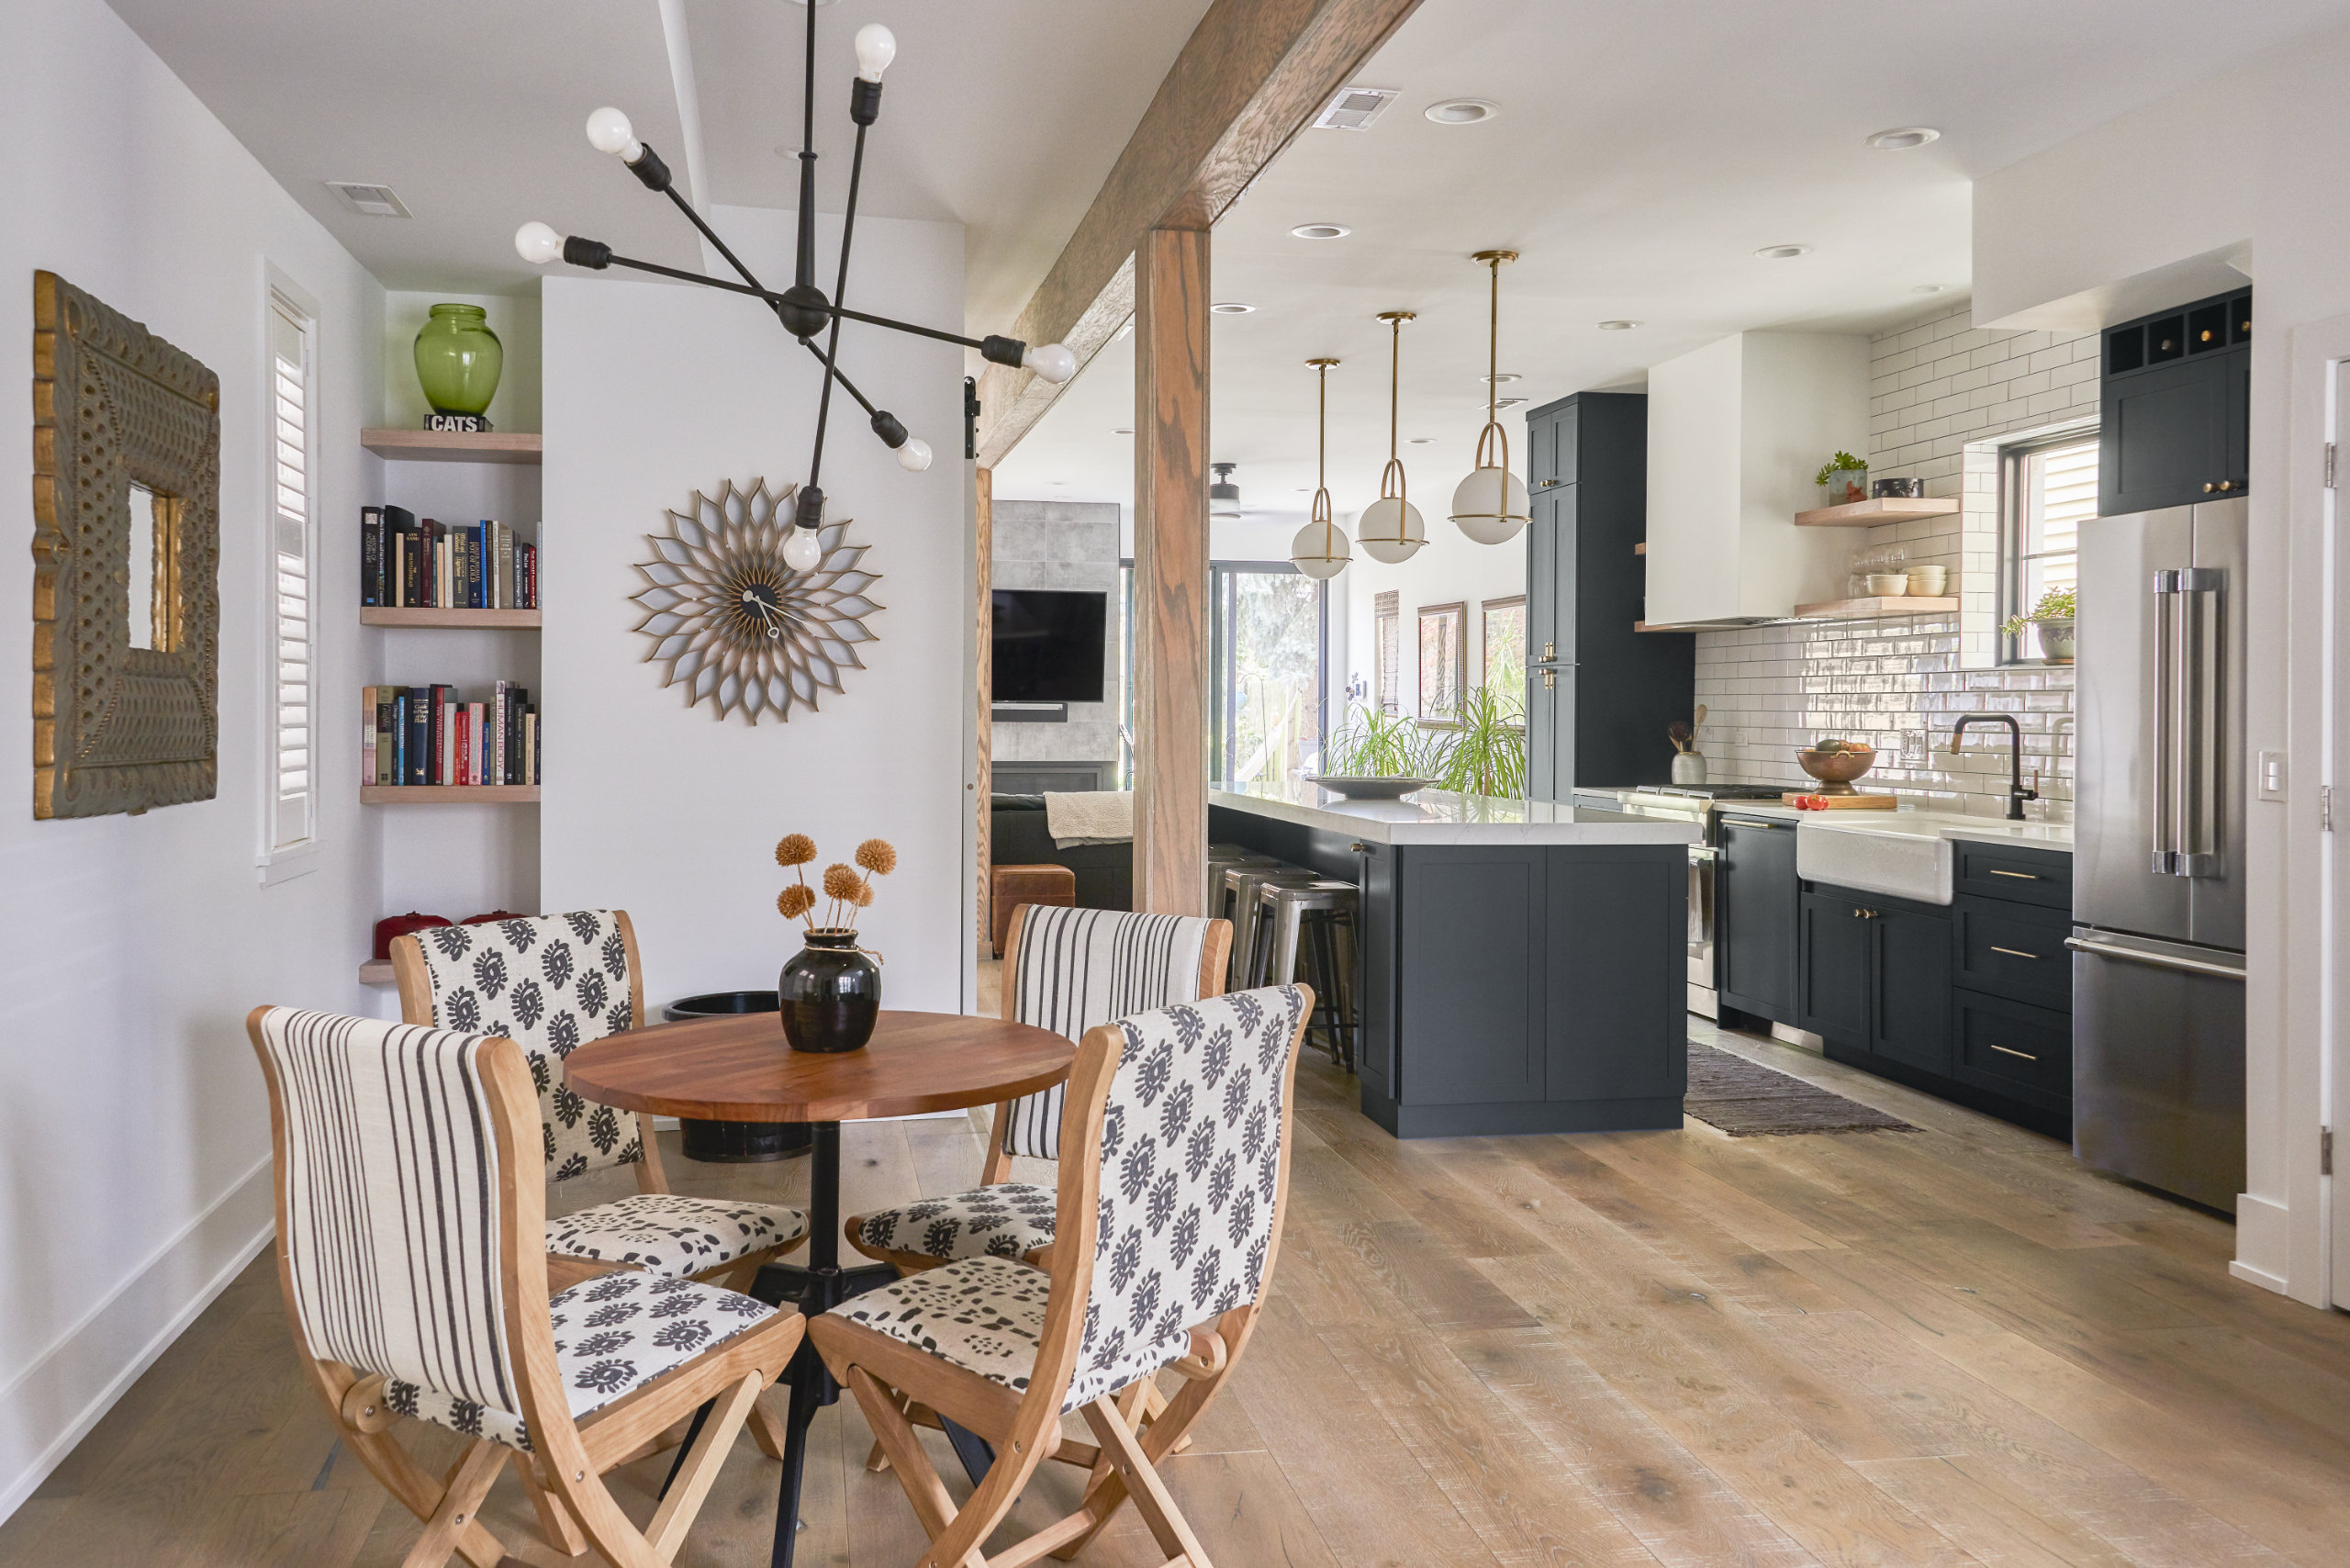 Highland Park General Contractor